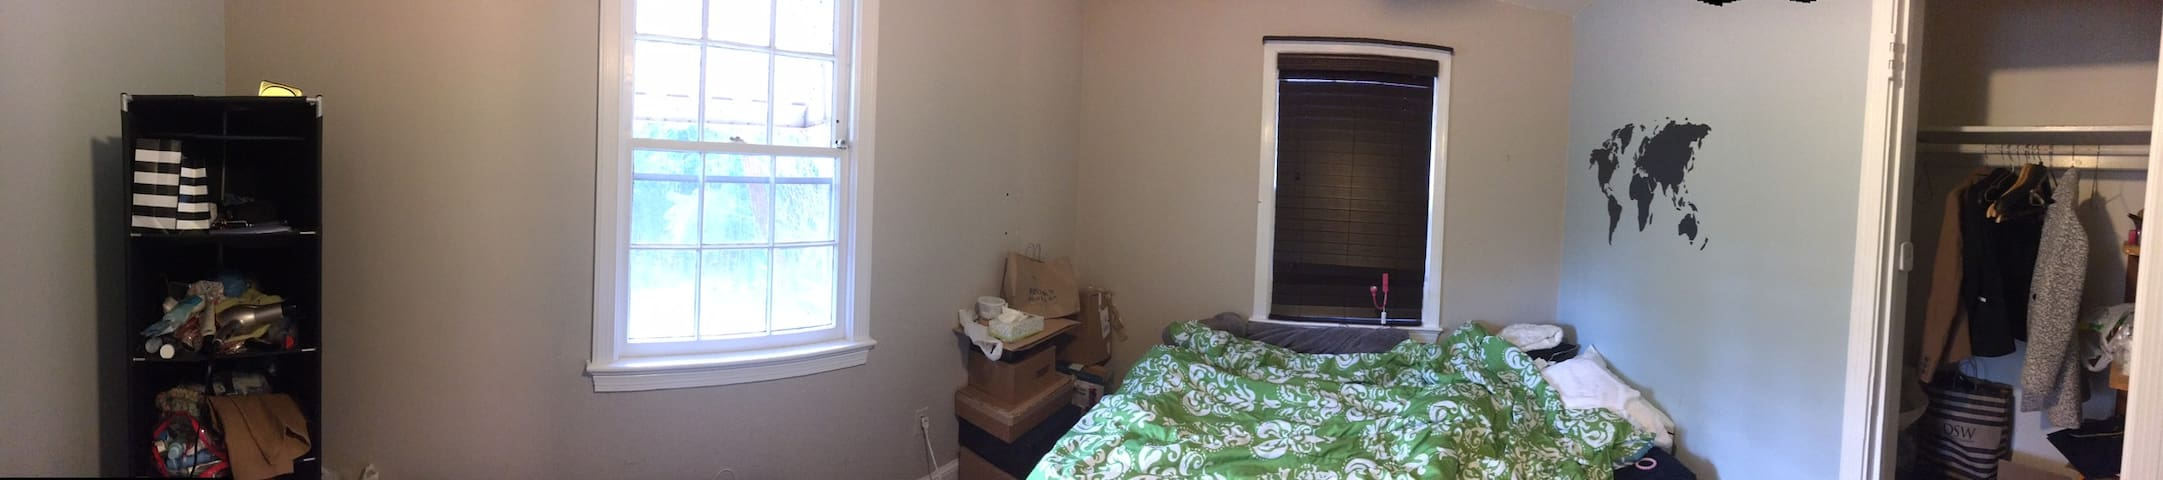 Small basic room in beautiful house in DC - Washington - Hus